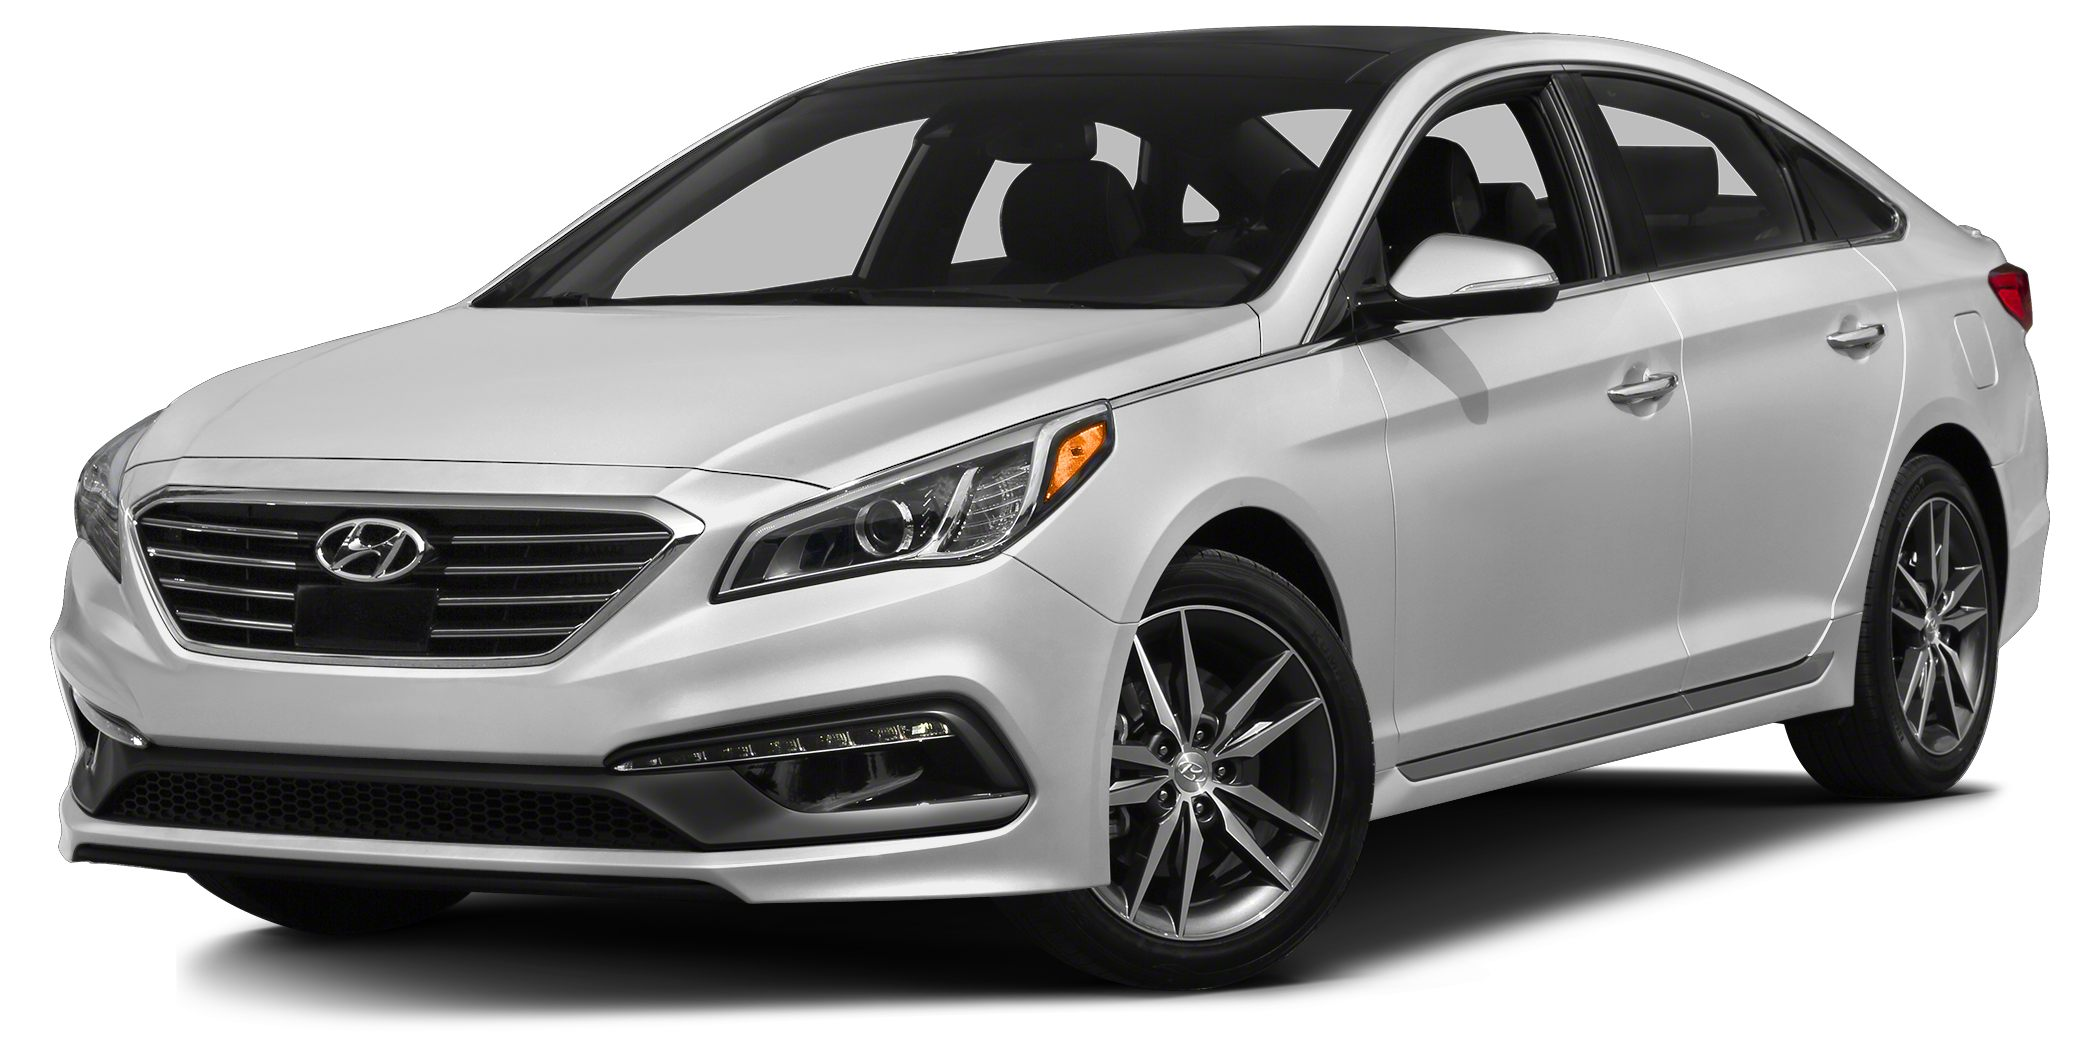 2015 Hyundai Sonata Limited Navigation System w 8-inch Touchscreen Display Rearview Camera Panor